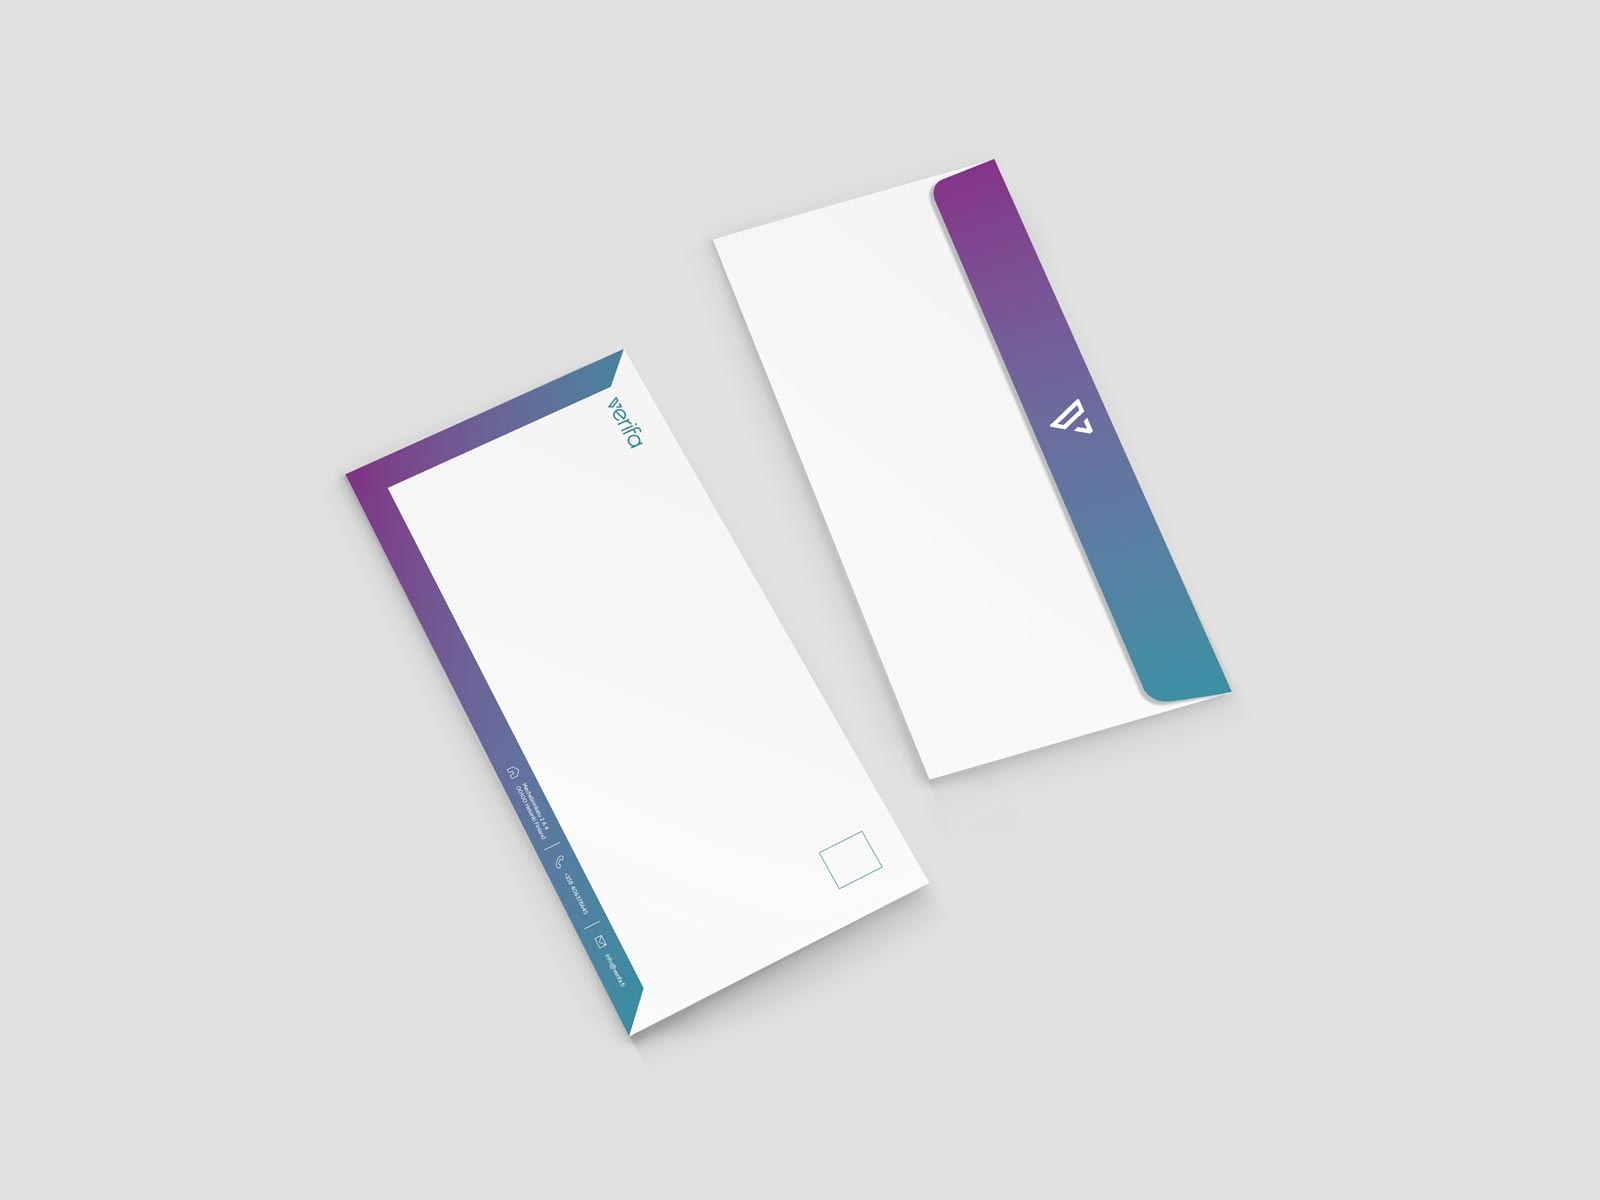 verifa envelope stationery branding design